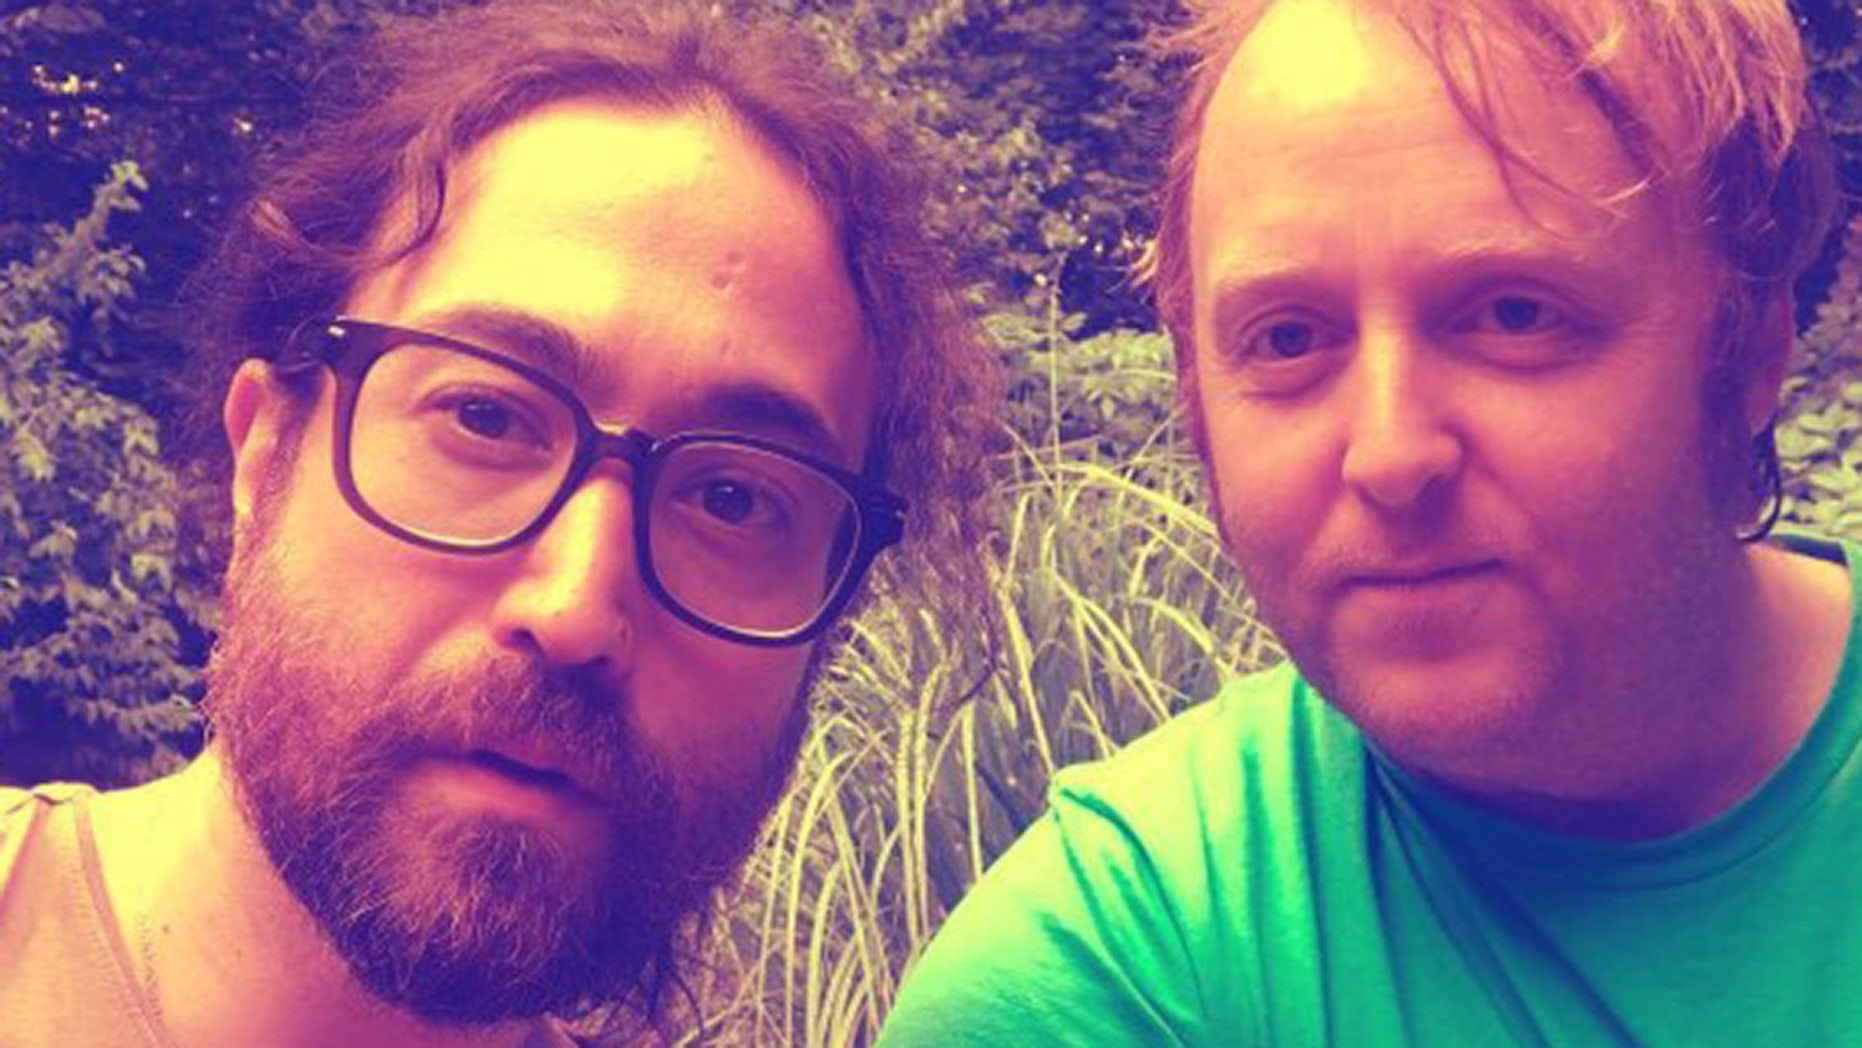 The sons of legendary Beatles posed for a selfie on Monday and users commented on how they resemble their fathers.